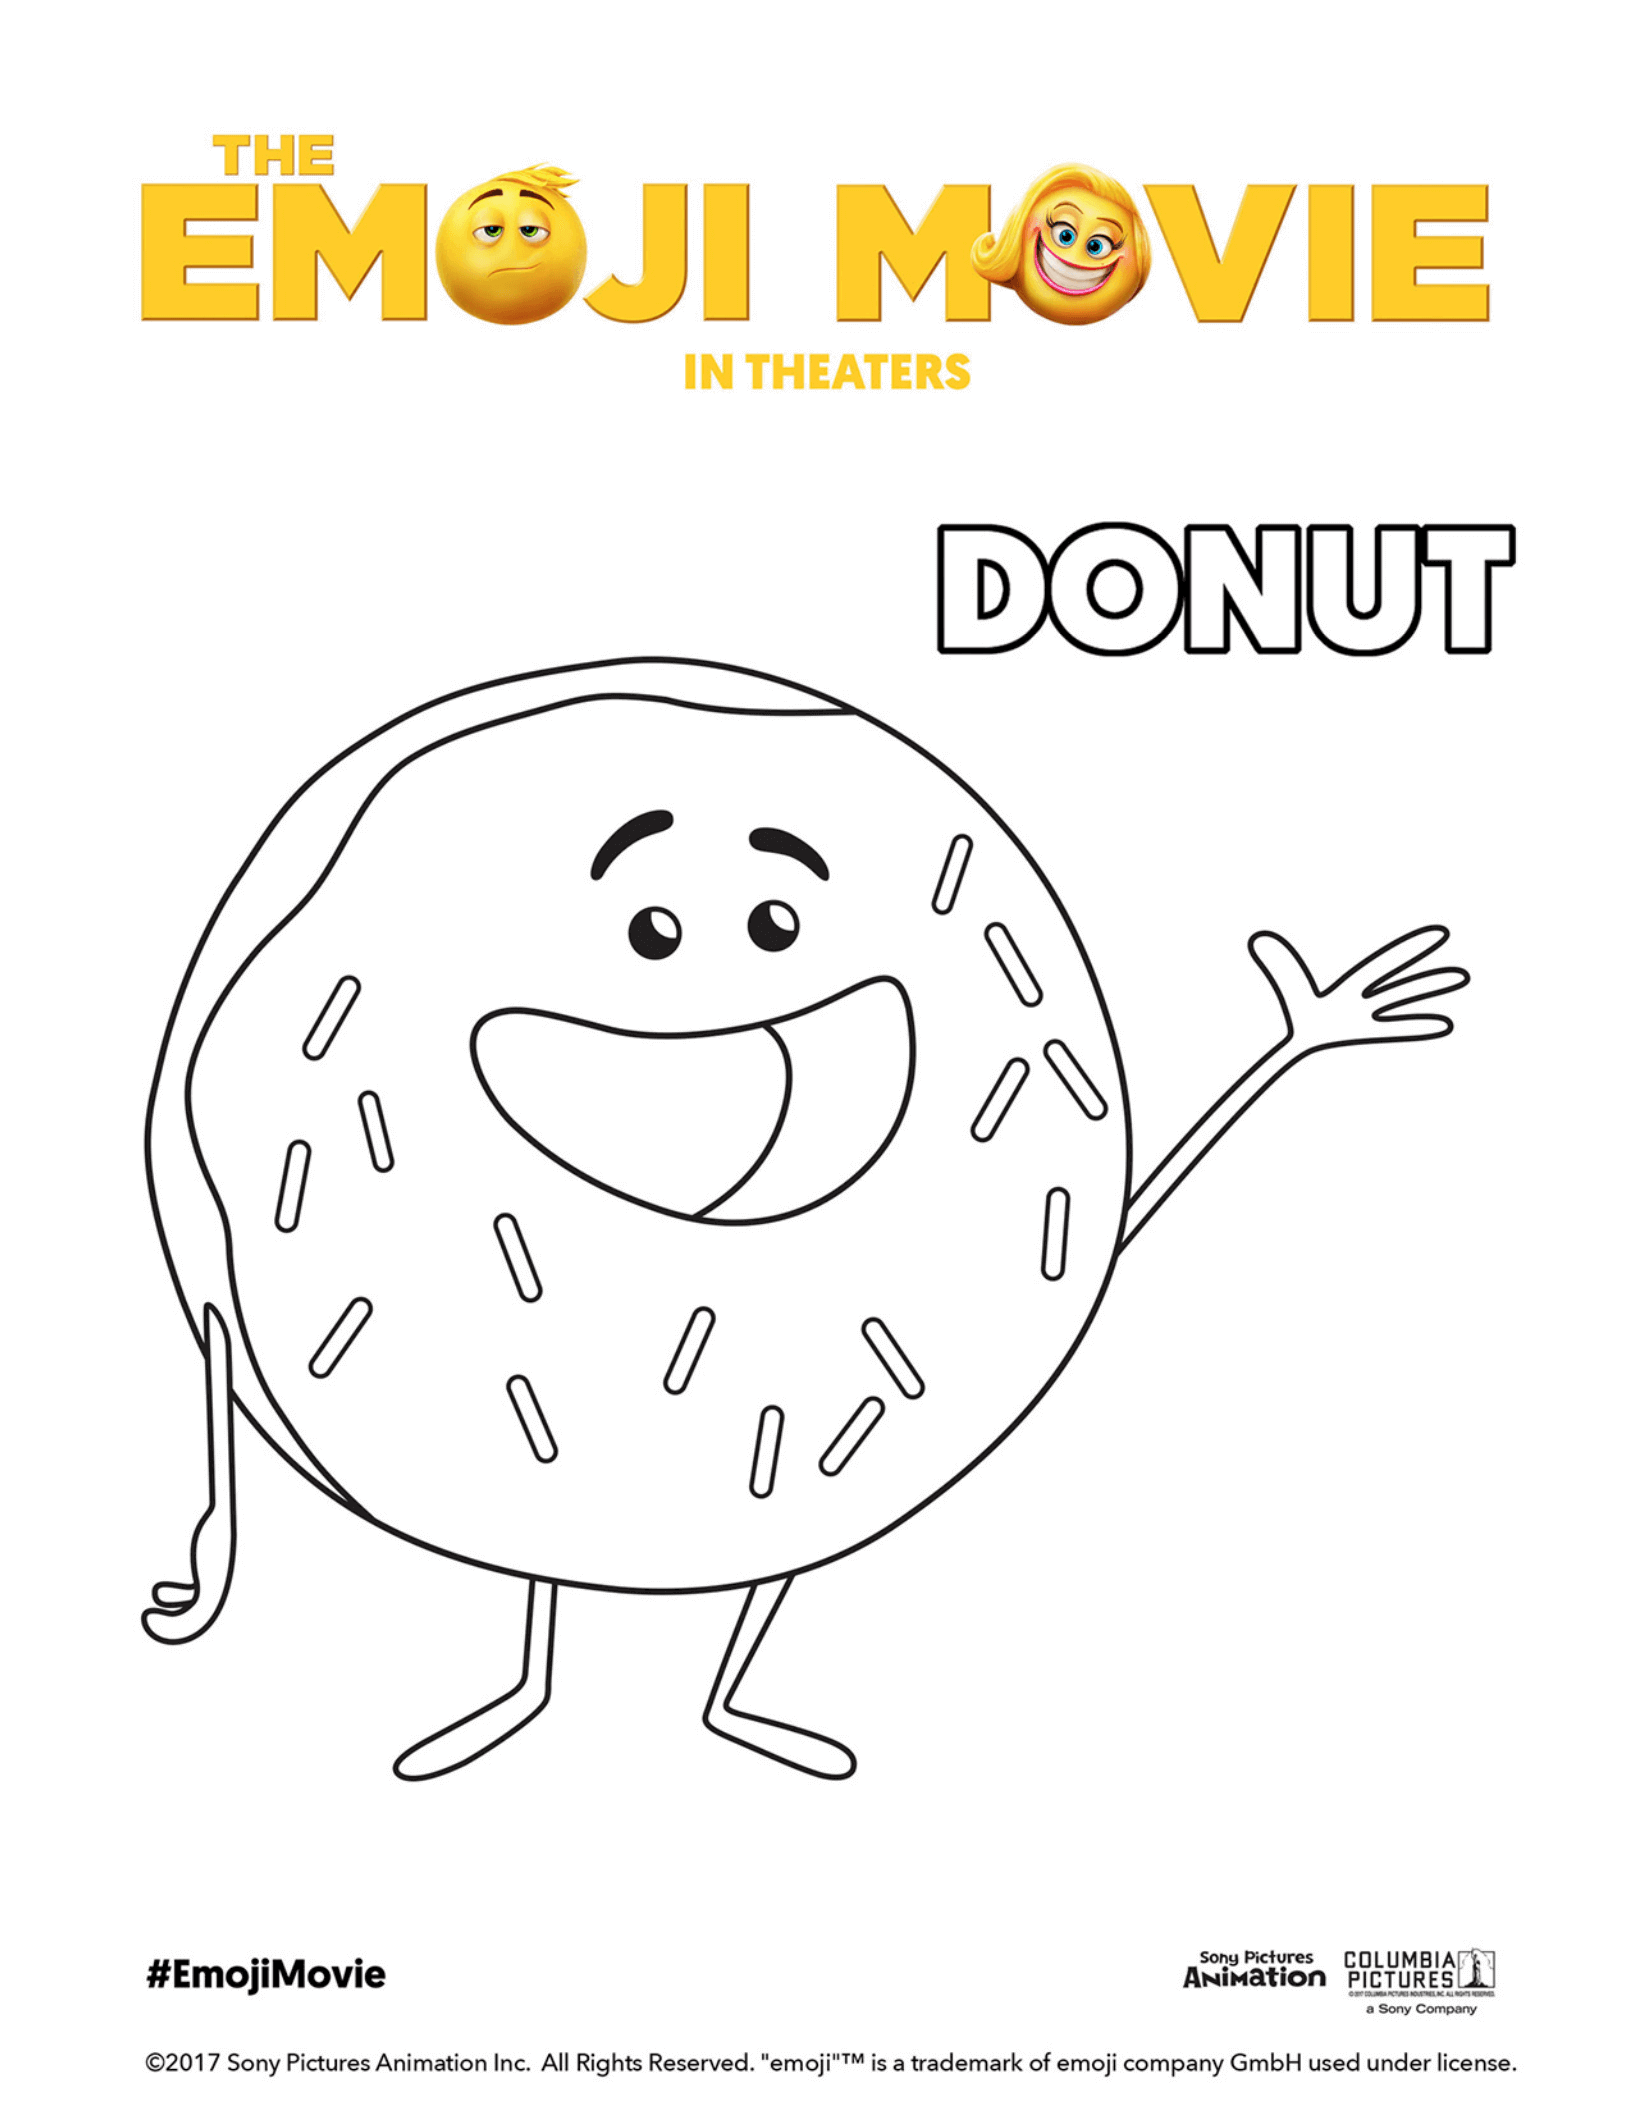 The Emoji Movie Donut Coloring Page | Free Movie Coloring Pages ...